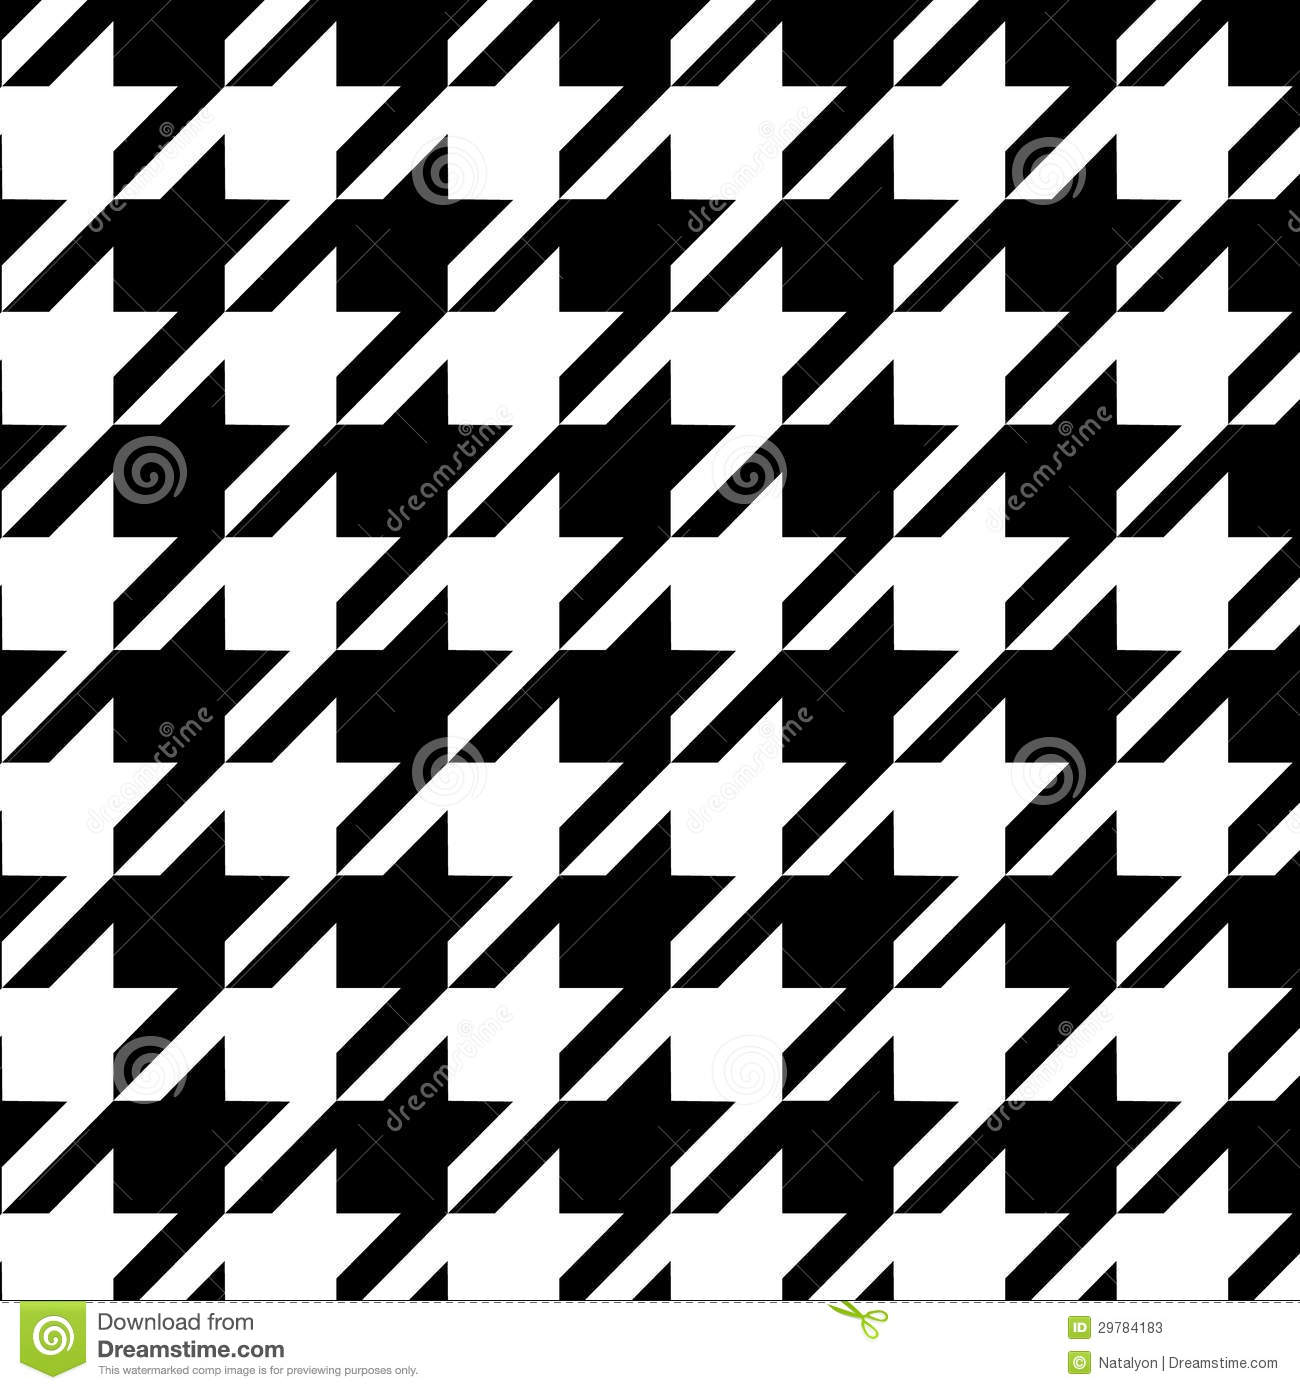 Houndstooth seamless pattern black and white, vector